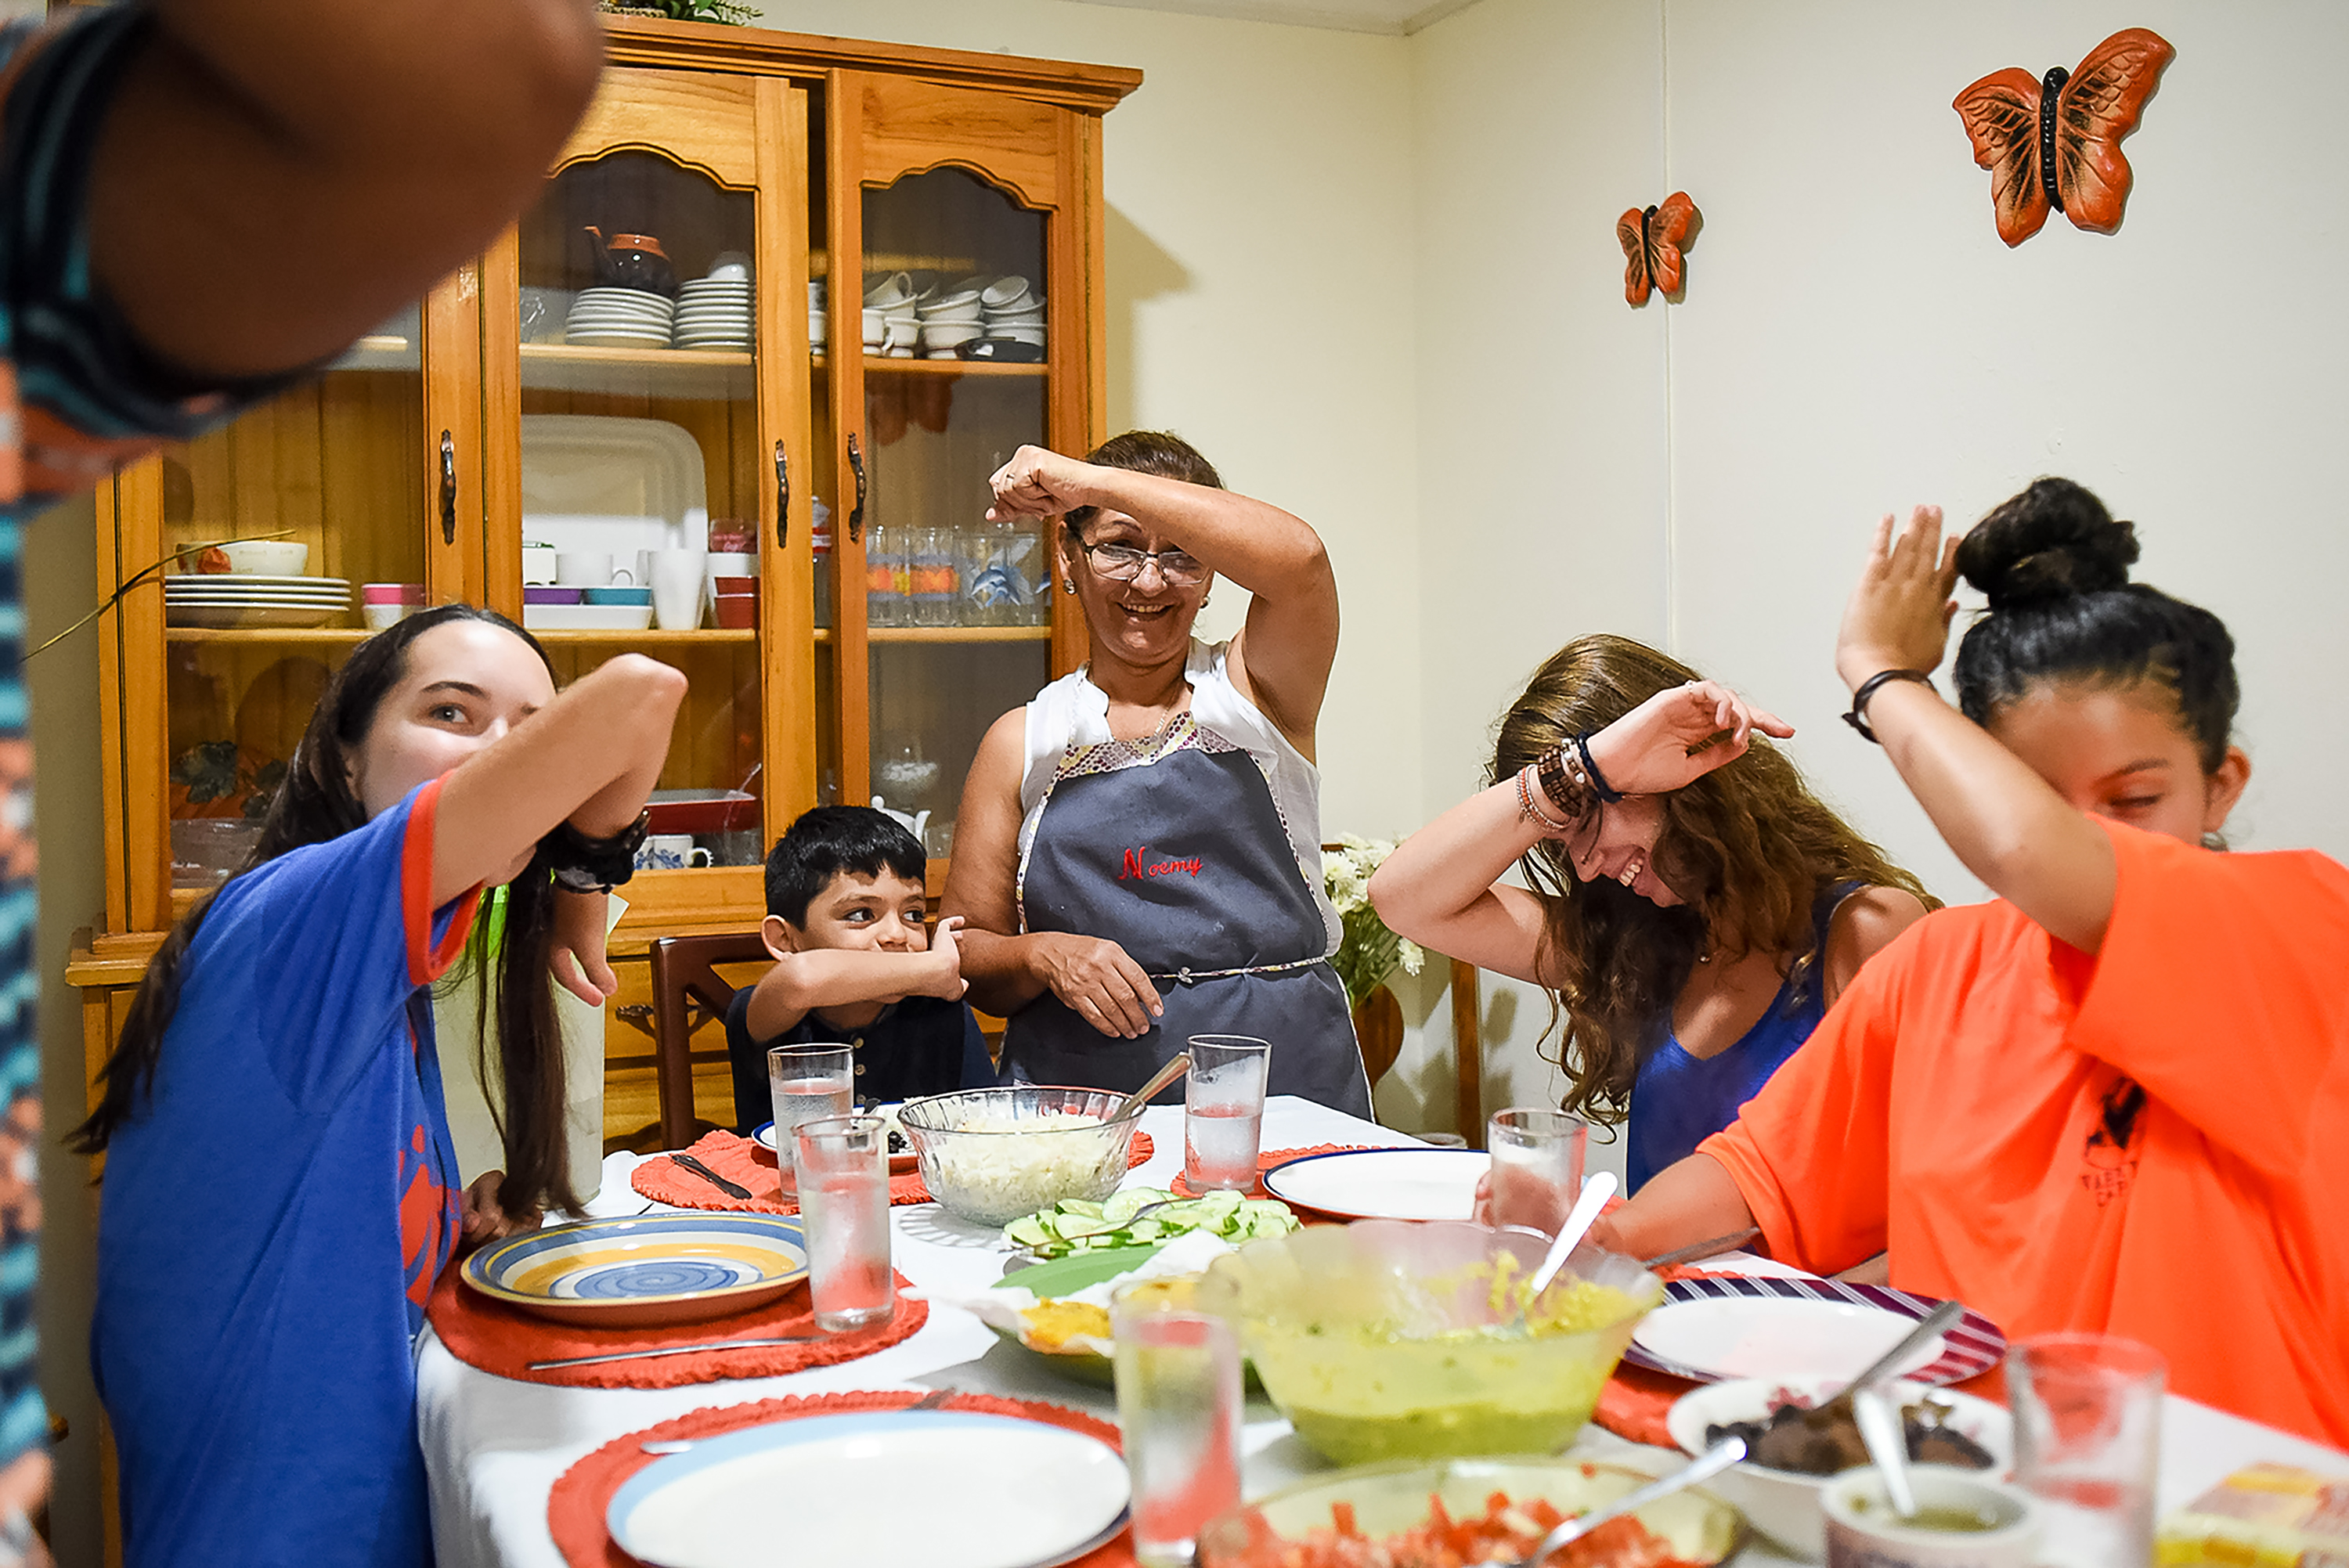 Students have some fun over dinner on Spanish Language Immersion in Costa Rica.